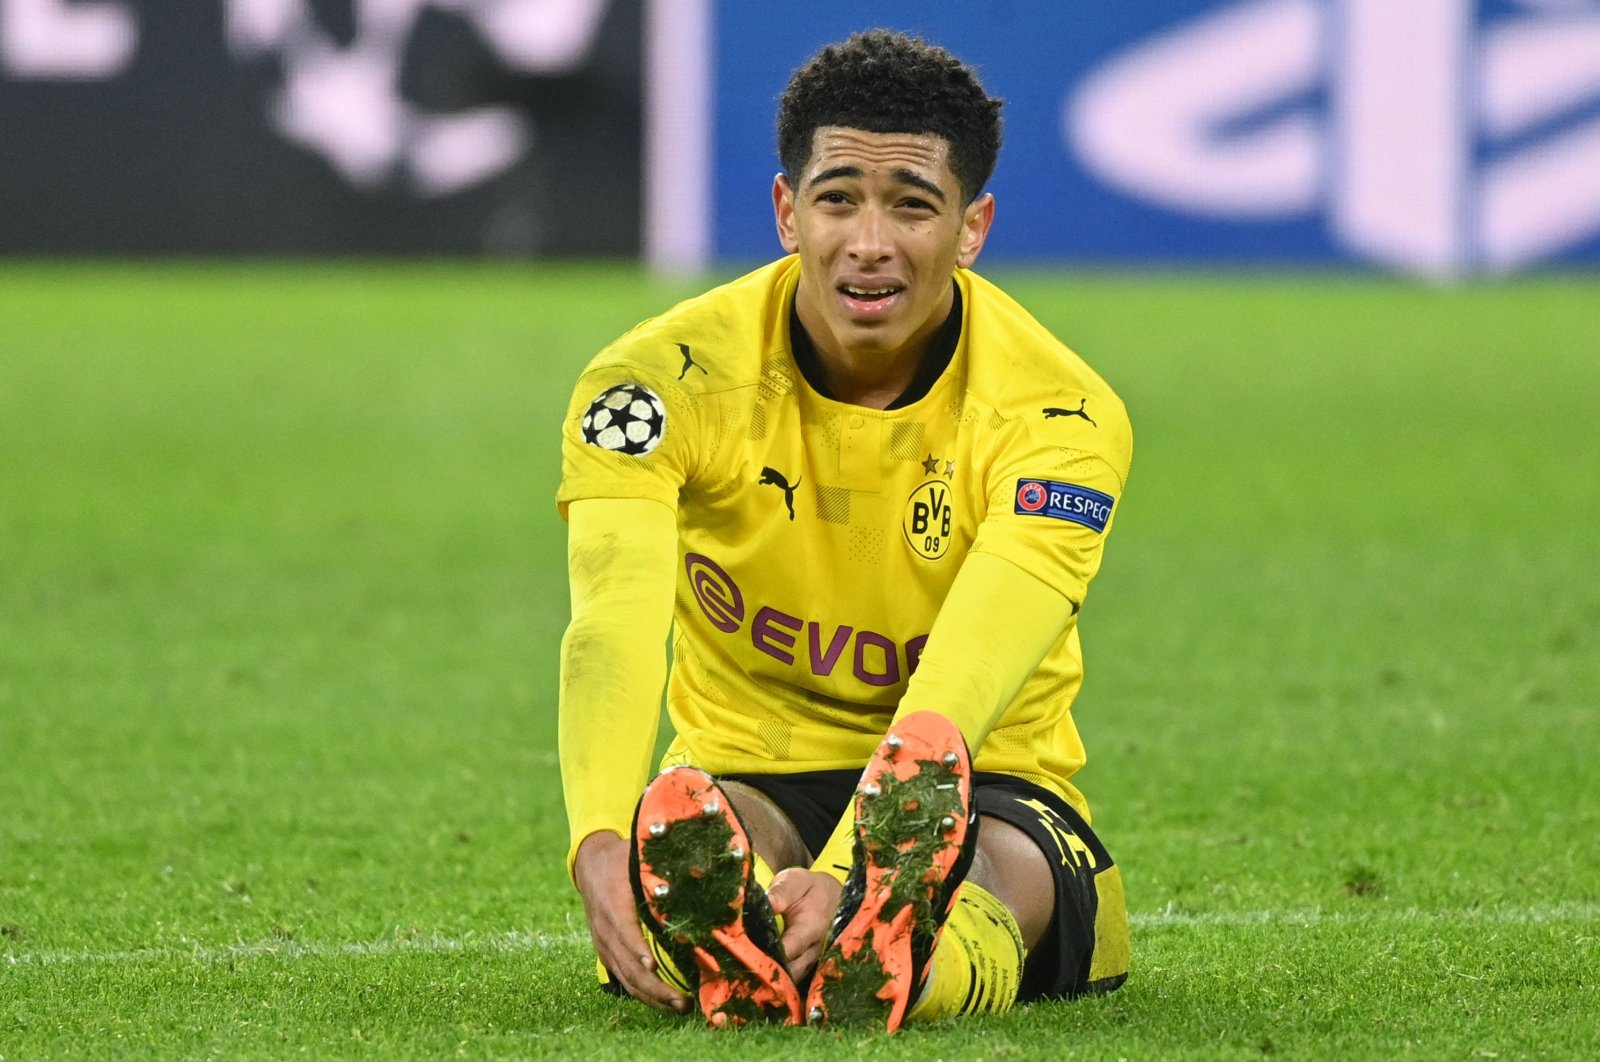 Dortmund's English midfielder Jude Bellingham sits on the pitch during the UEFA Champions League match against Lazio in Dortmund, western Germany, Dec. 02, 2020. (AFP Photo)